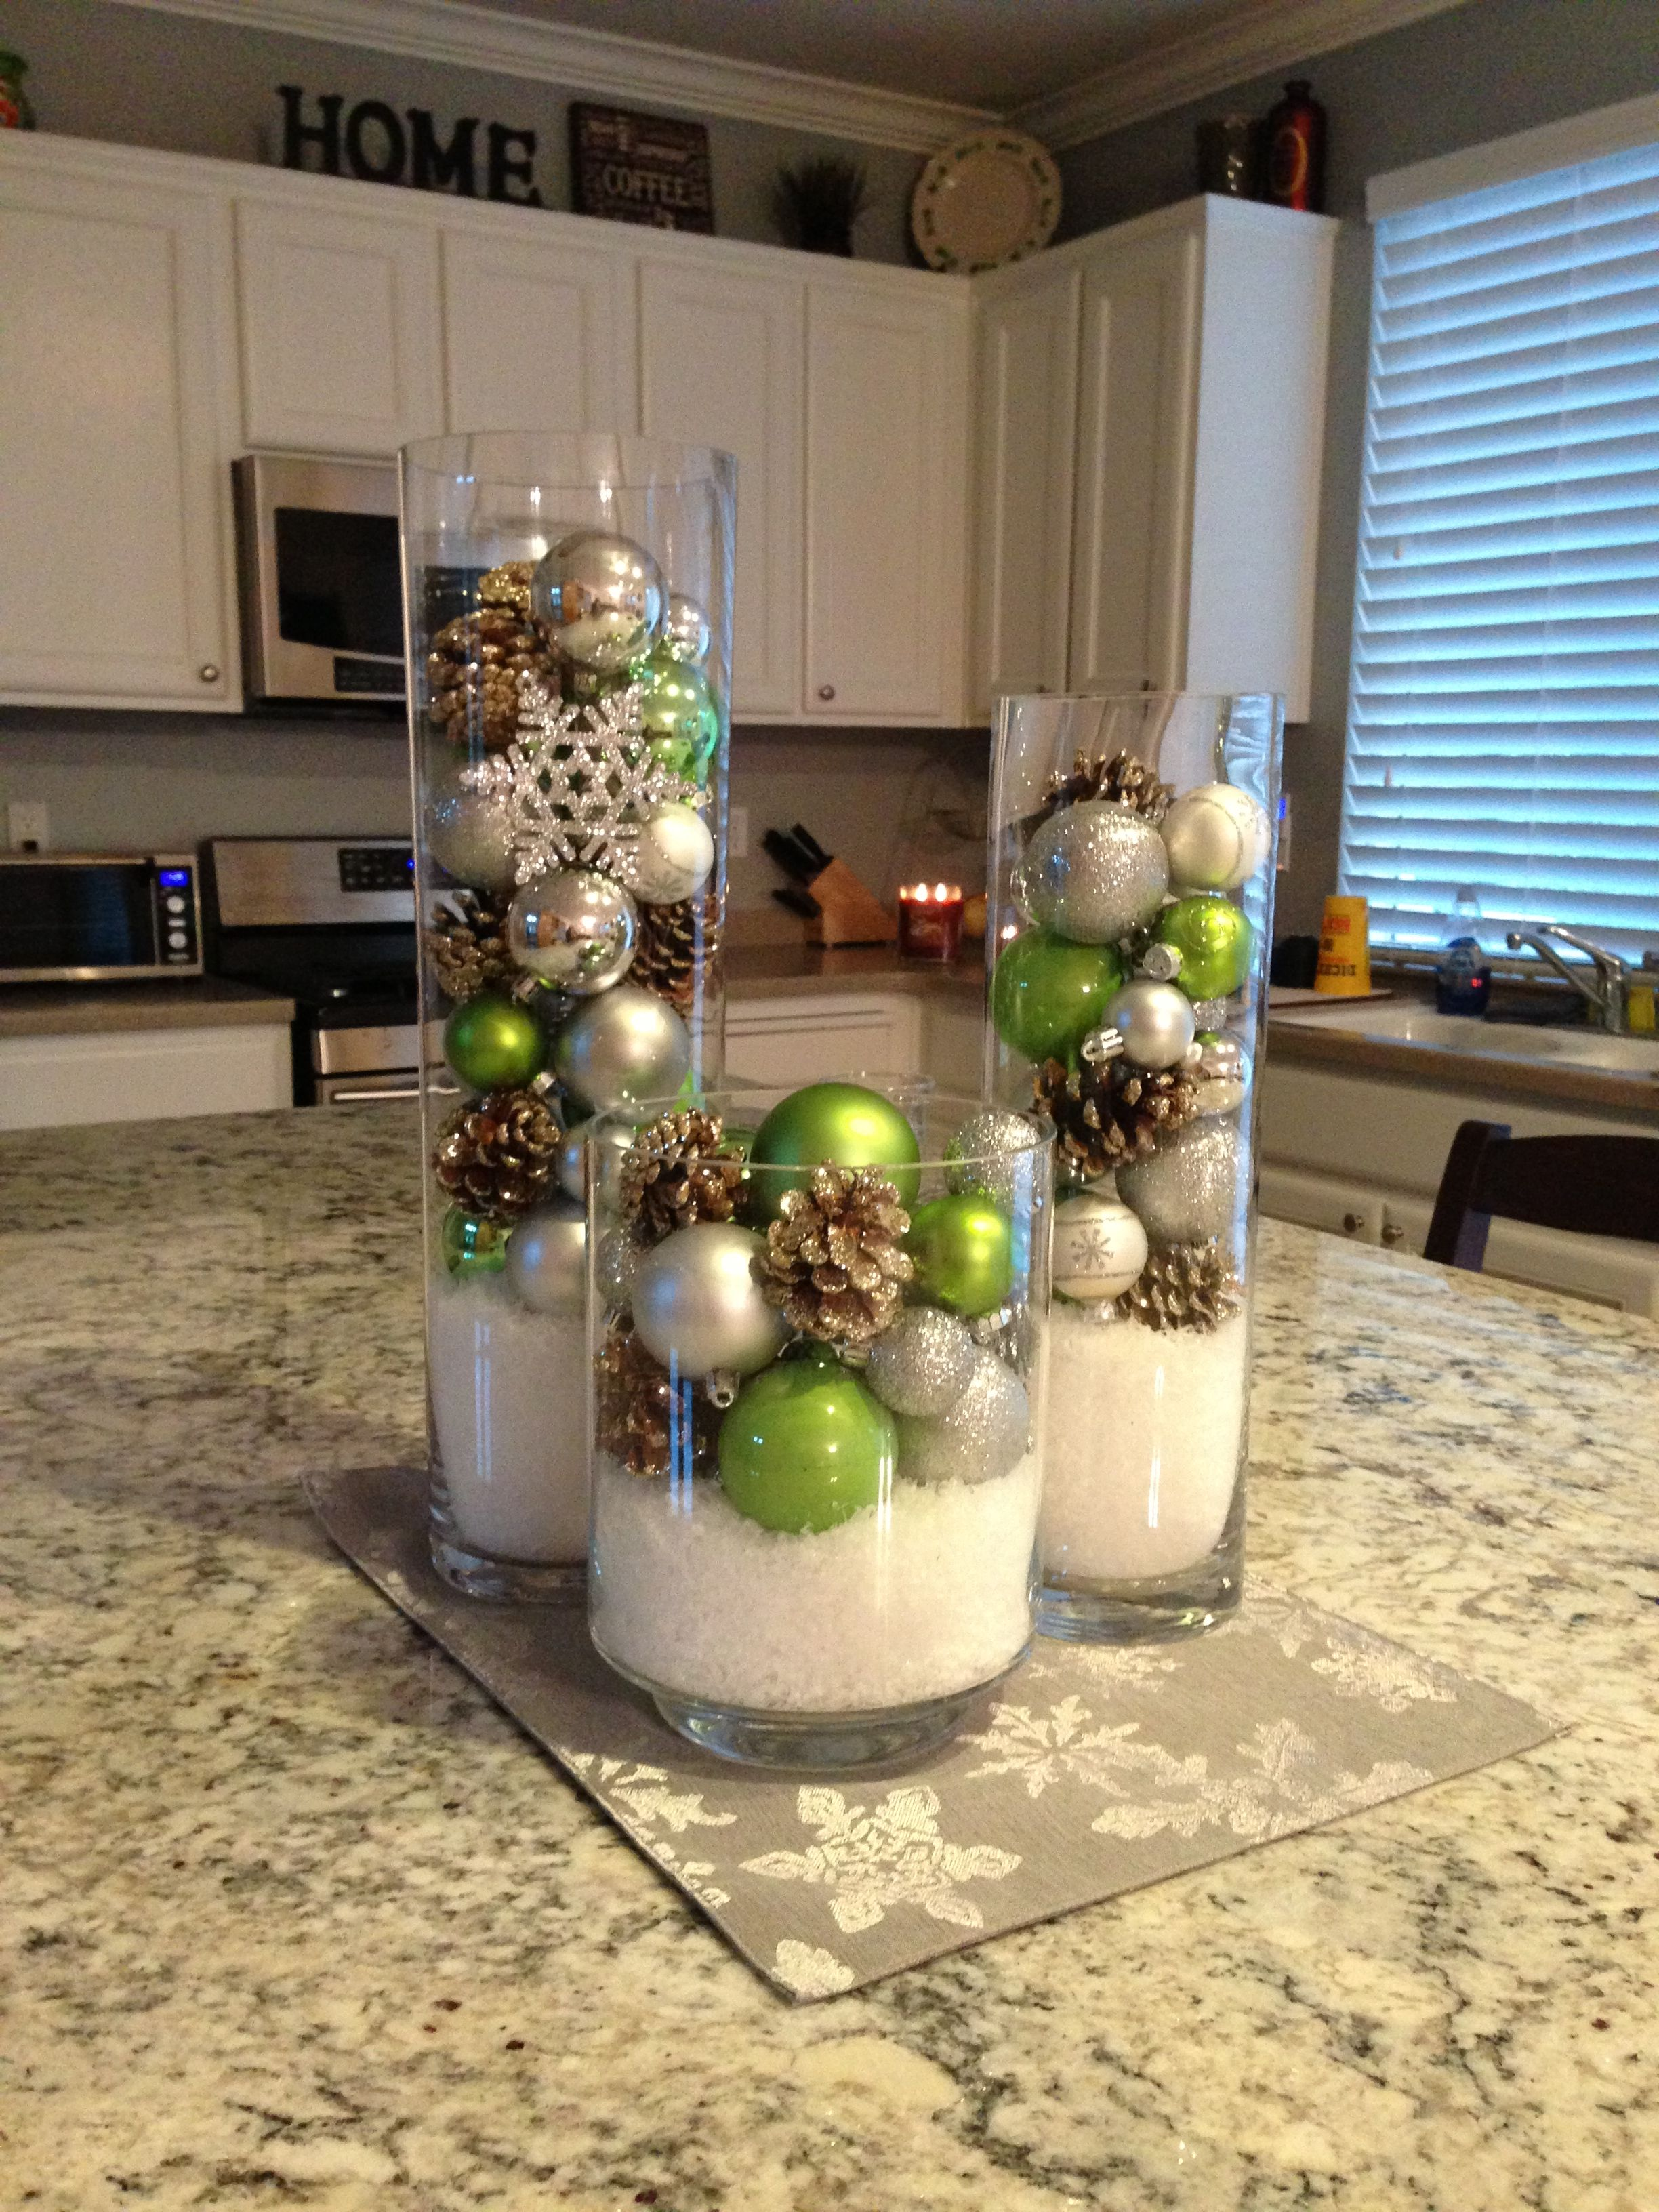 Blue Flame Kitchen Edmonton My Kitchen Island Centerpiece For Christmas Decoracia3n De